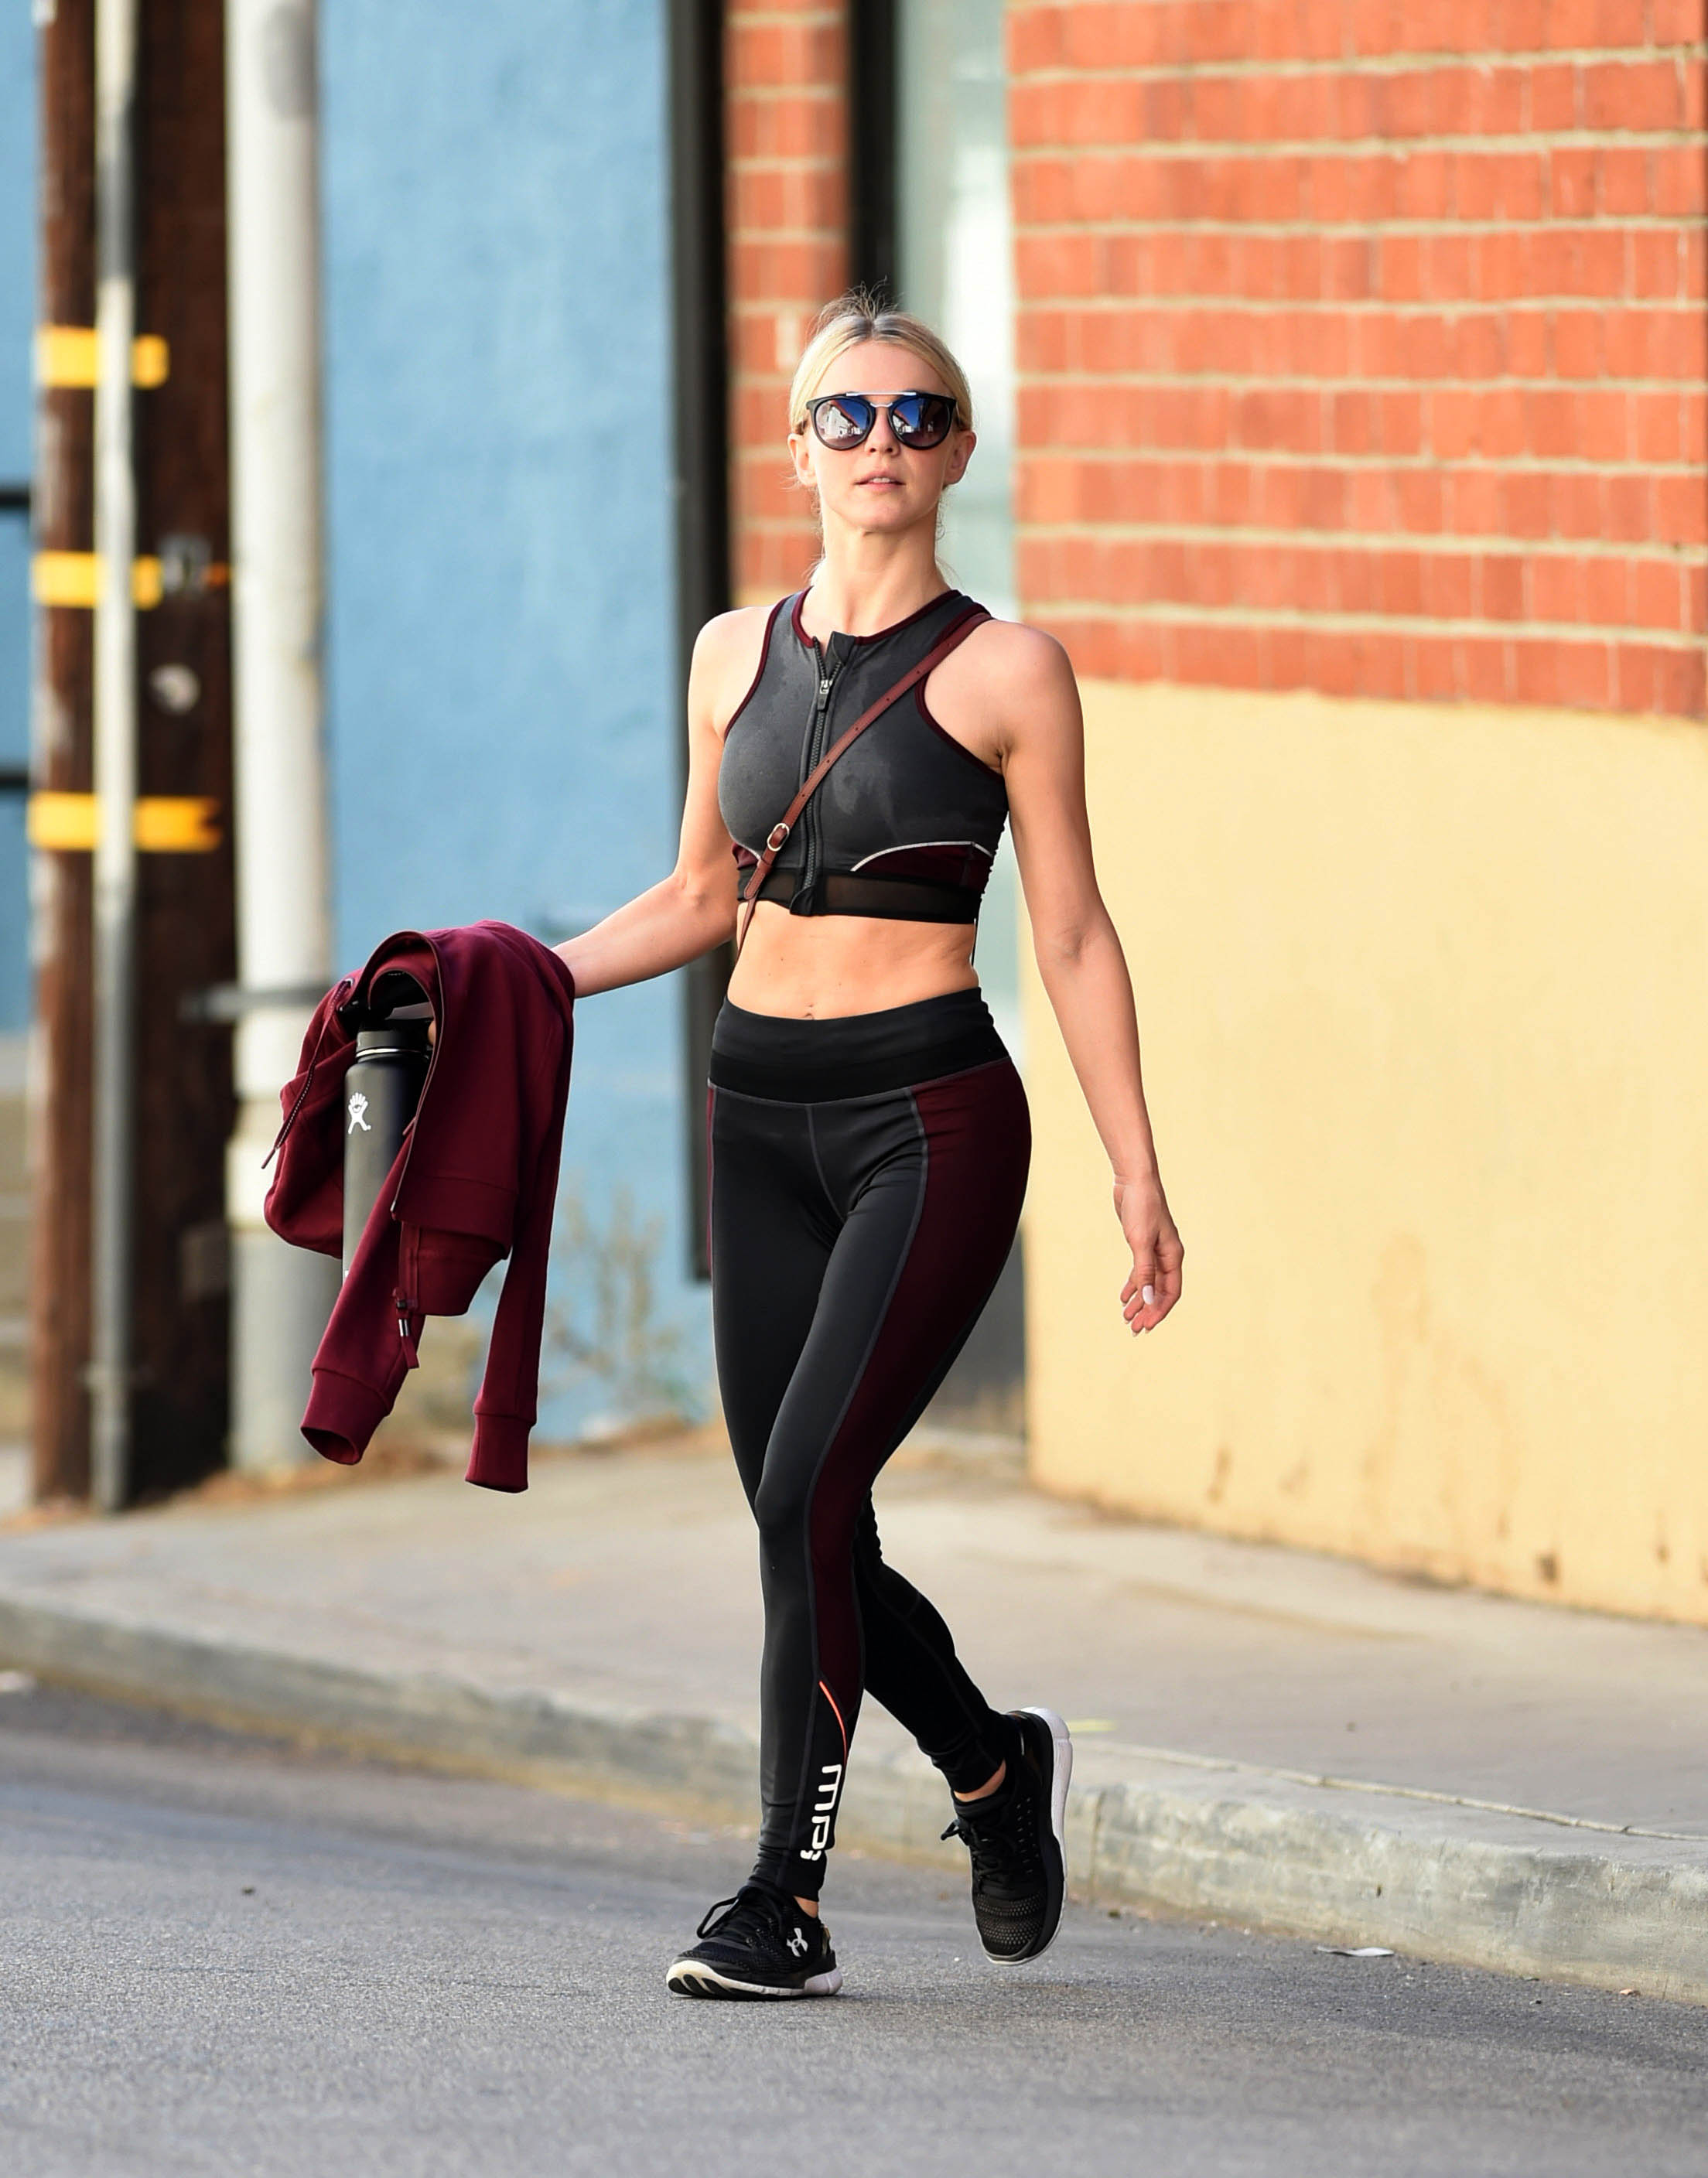 Julianne Hough looks like she hardly broke a sweat after her morning workout                                    Featuring: Julianne Hough                  Where: Los Angeles, California, United States                  When: 11 Oct 2017                  Credit: WENN.com